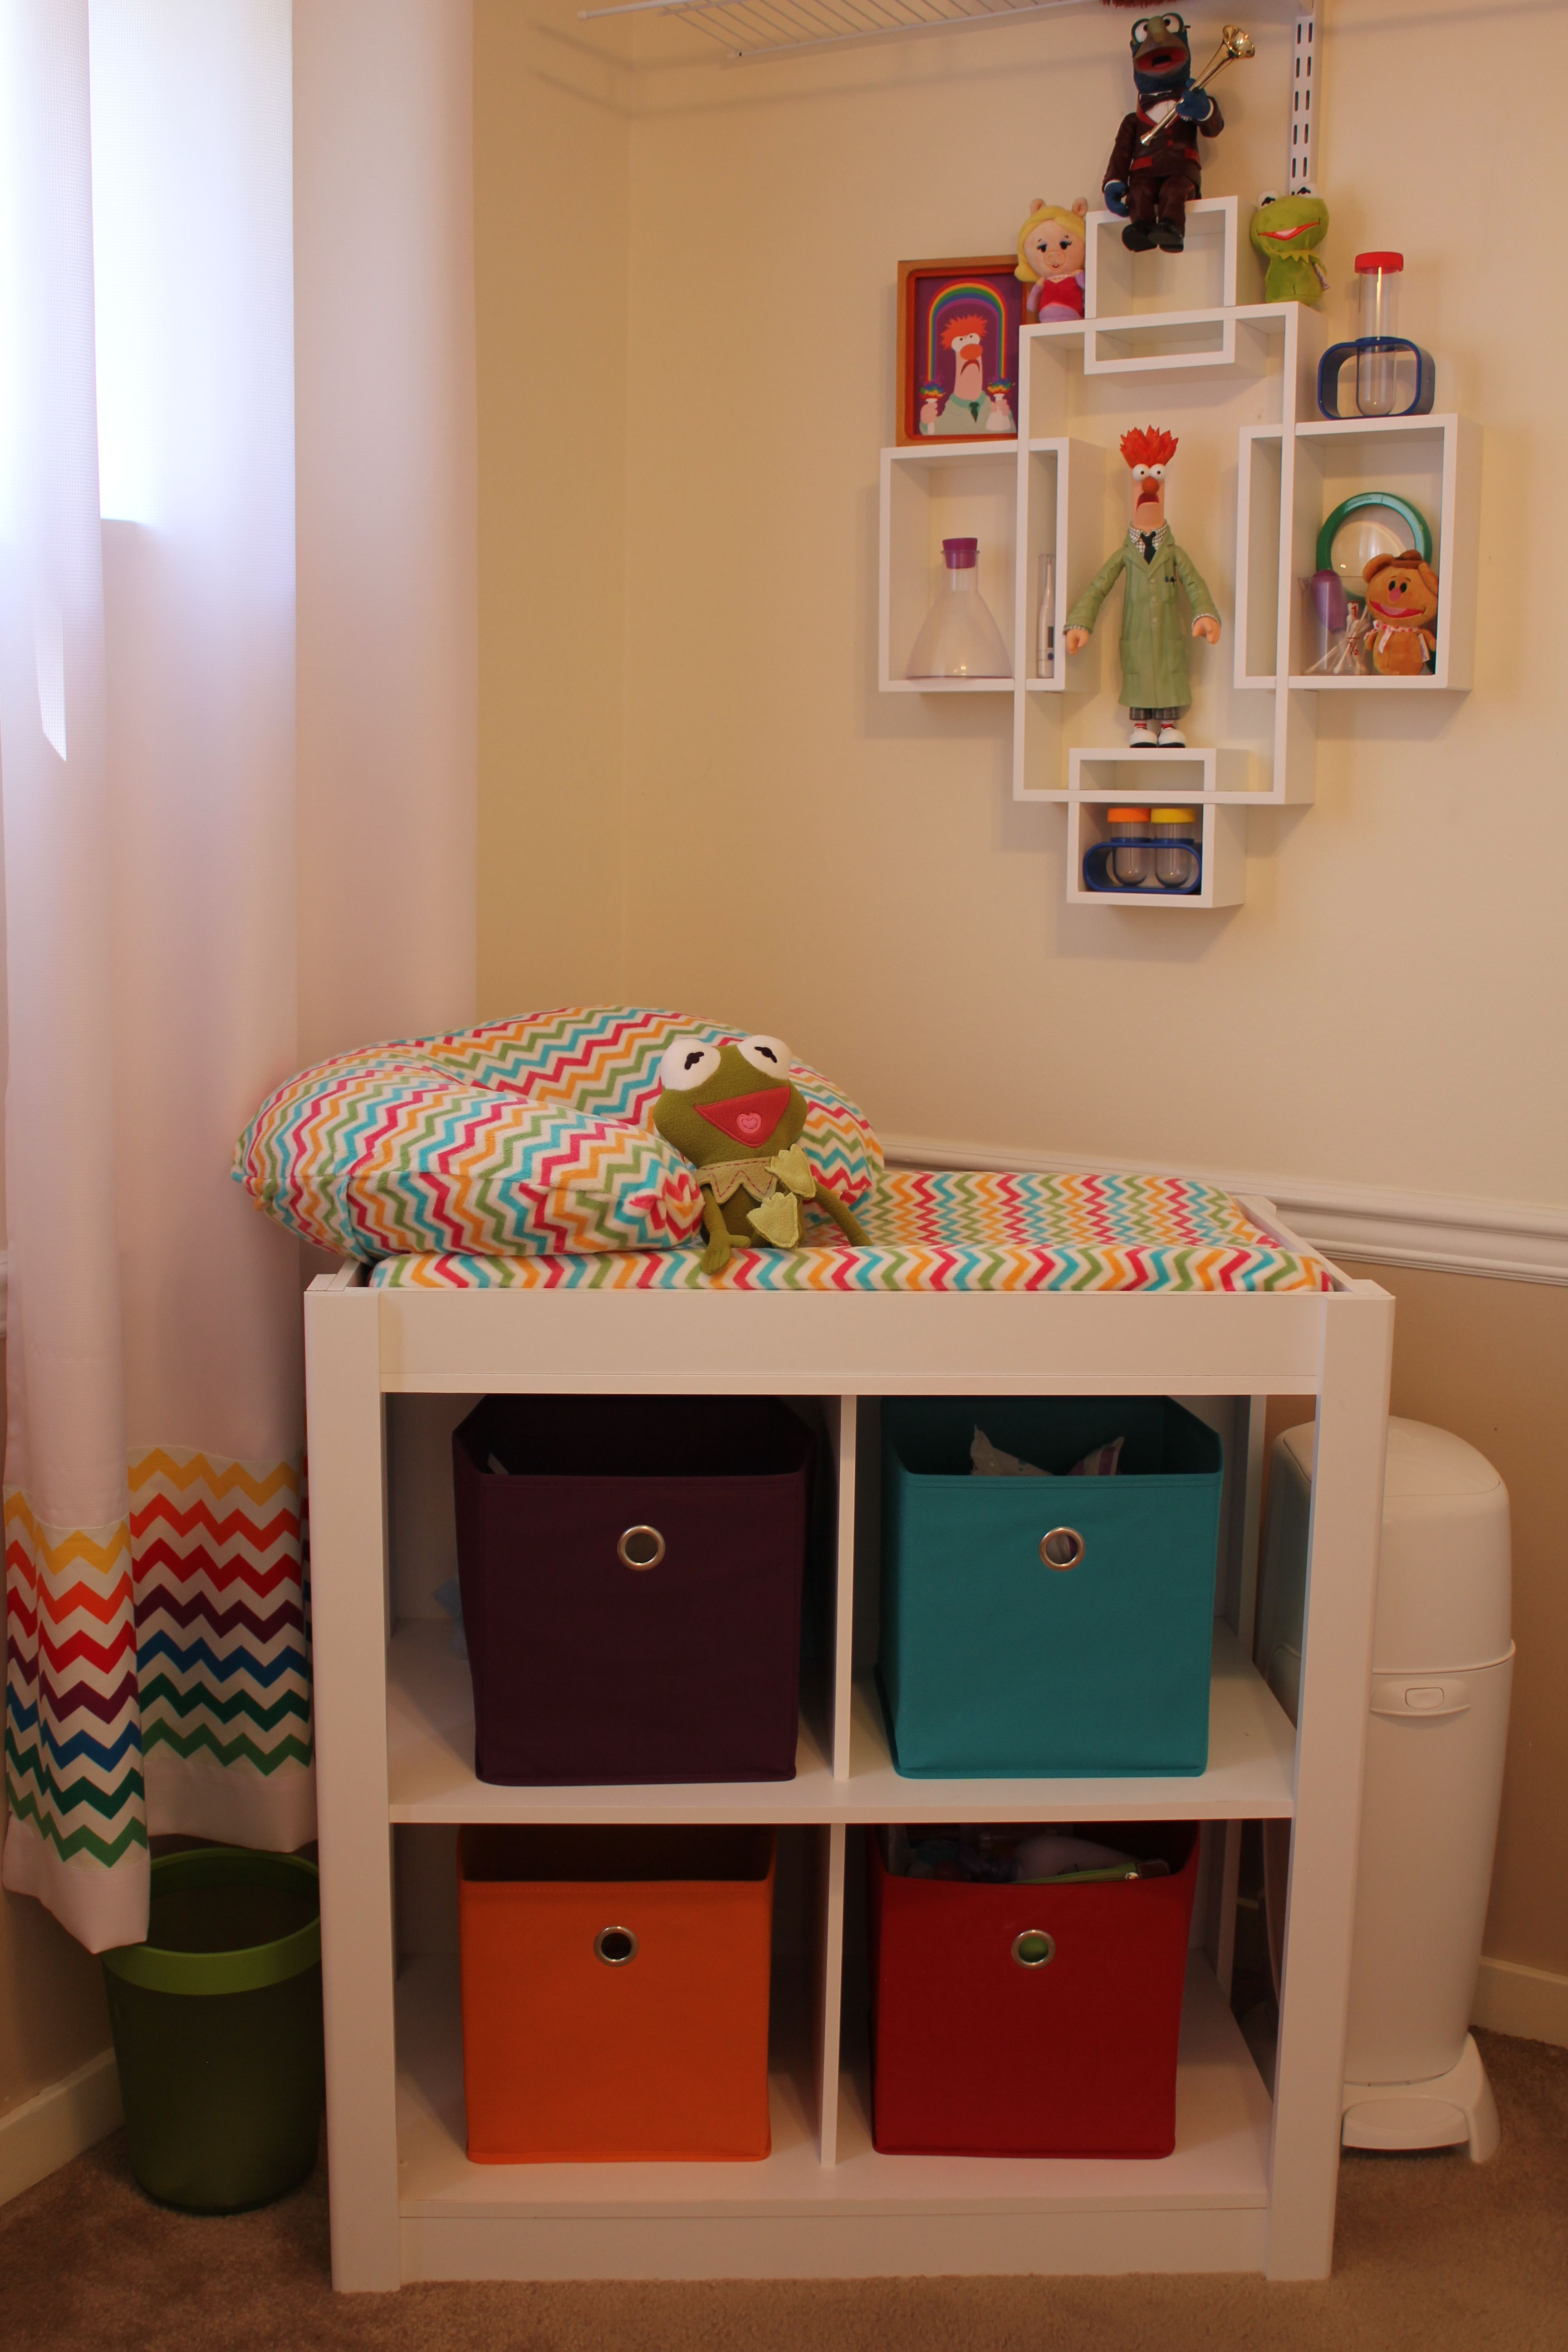 Muppet Nursery, Muppet Labs Changing Station (Rainbow Chevron Fabric Sewn